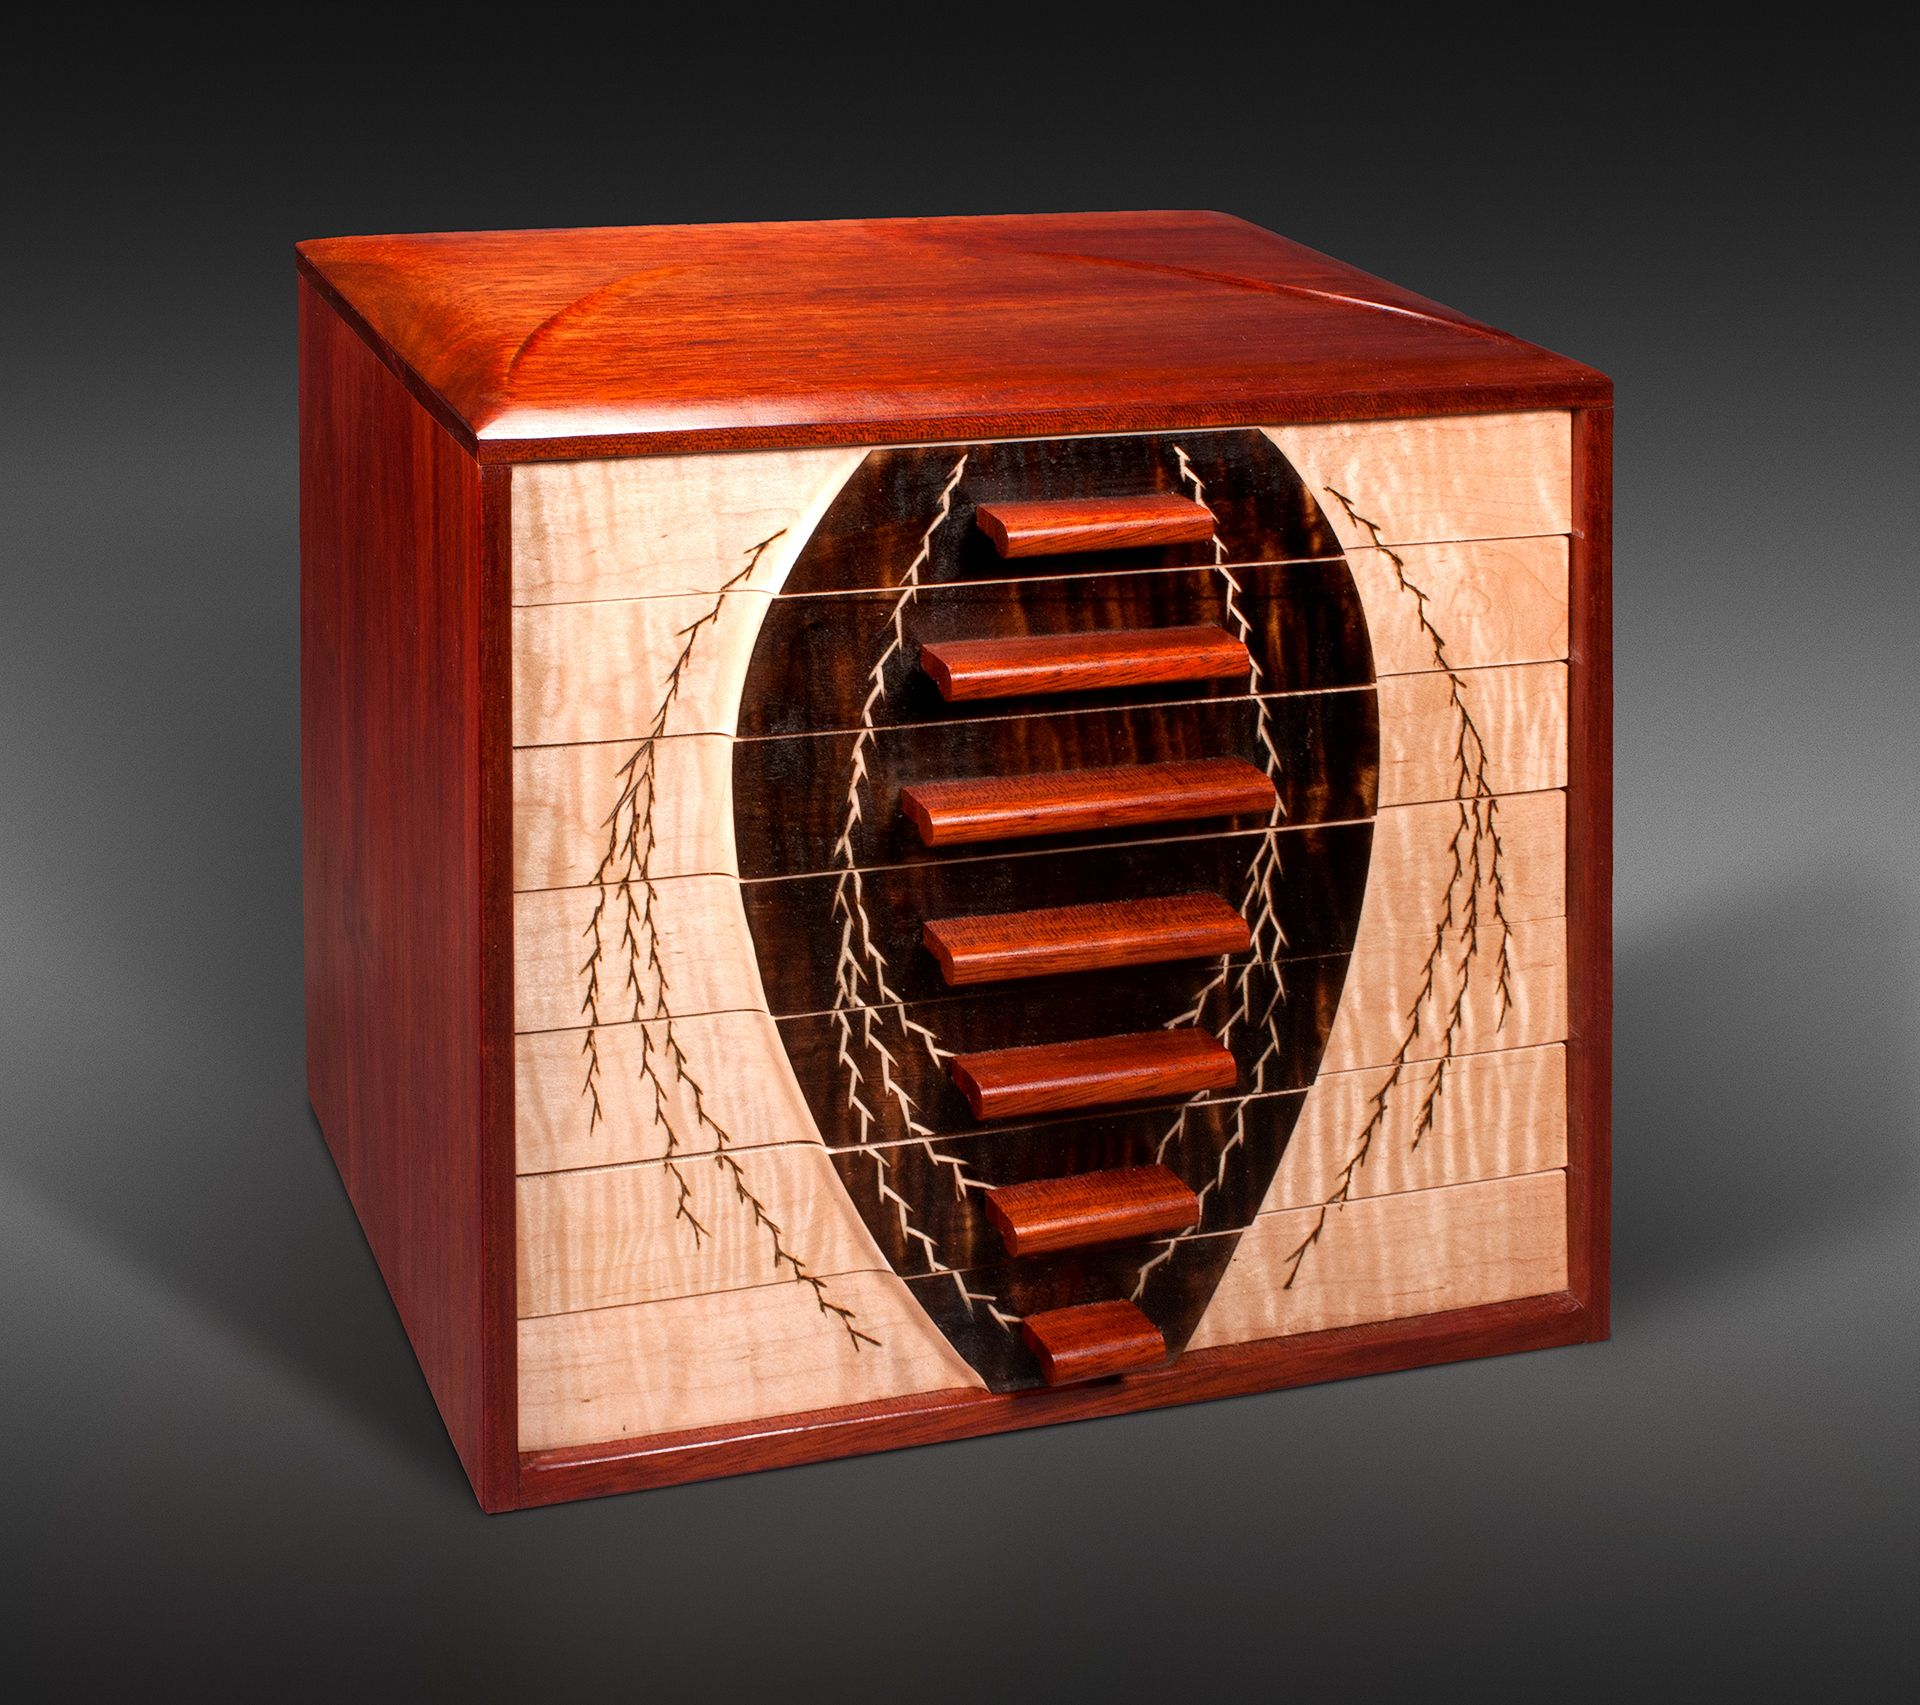 malvelous jewelry boxes by ron lentz wood projects pinterest. Black Bedroom Furniture Sets. Home Design Ideas